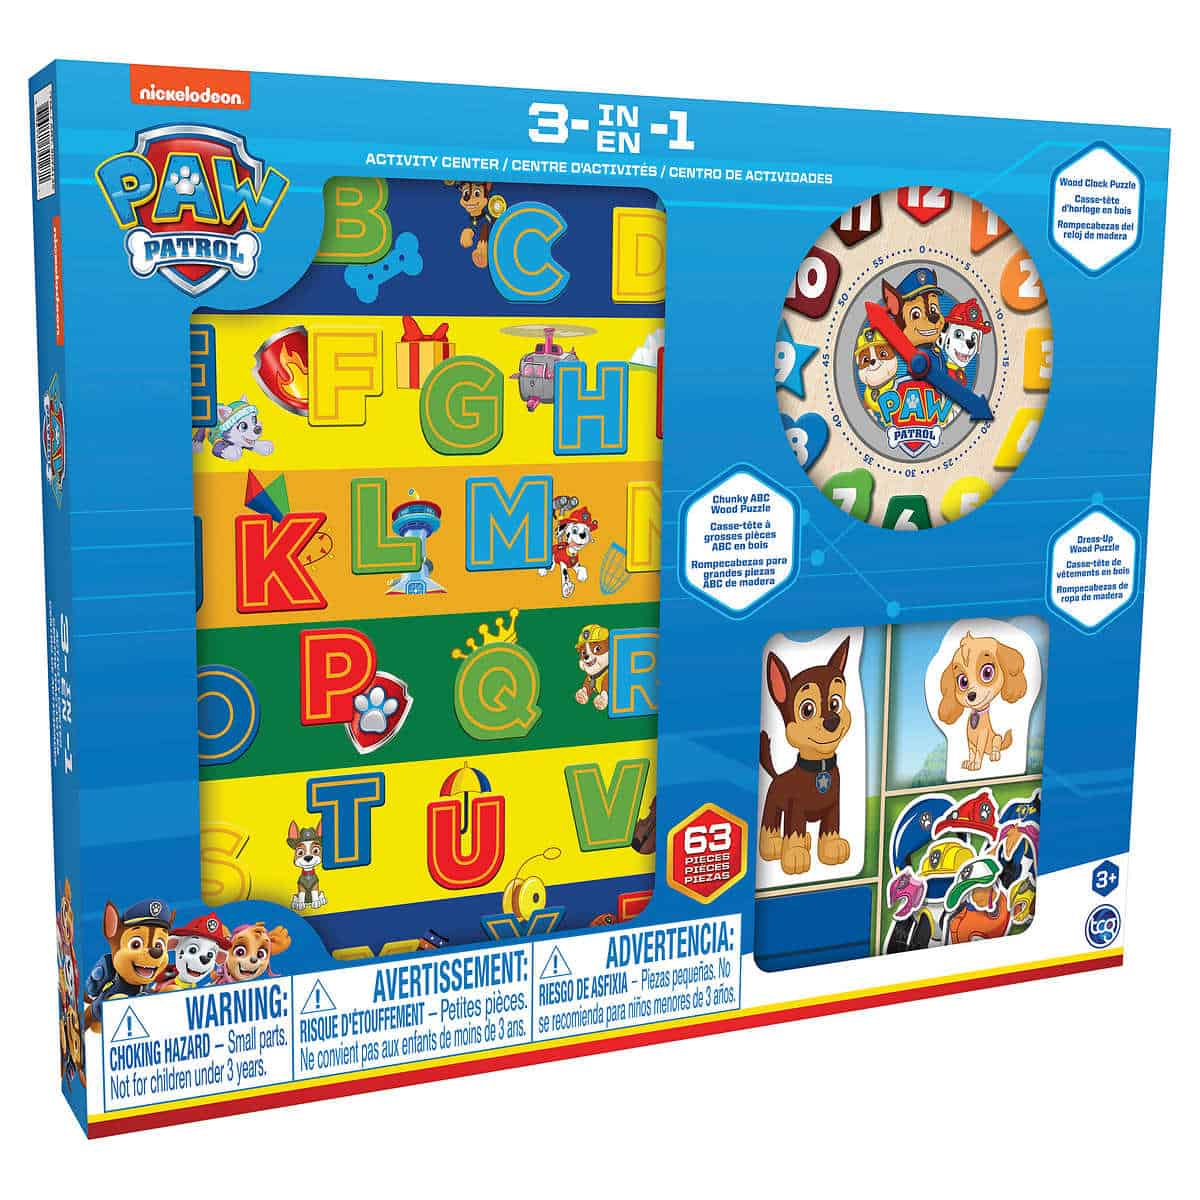 Peppa Pig, Paw Patrol Activity Centers ONLY $14.97 Shipped